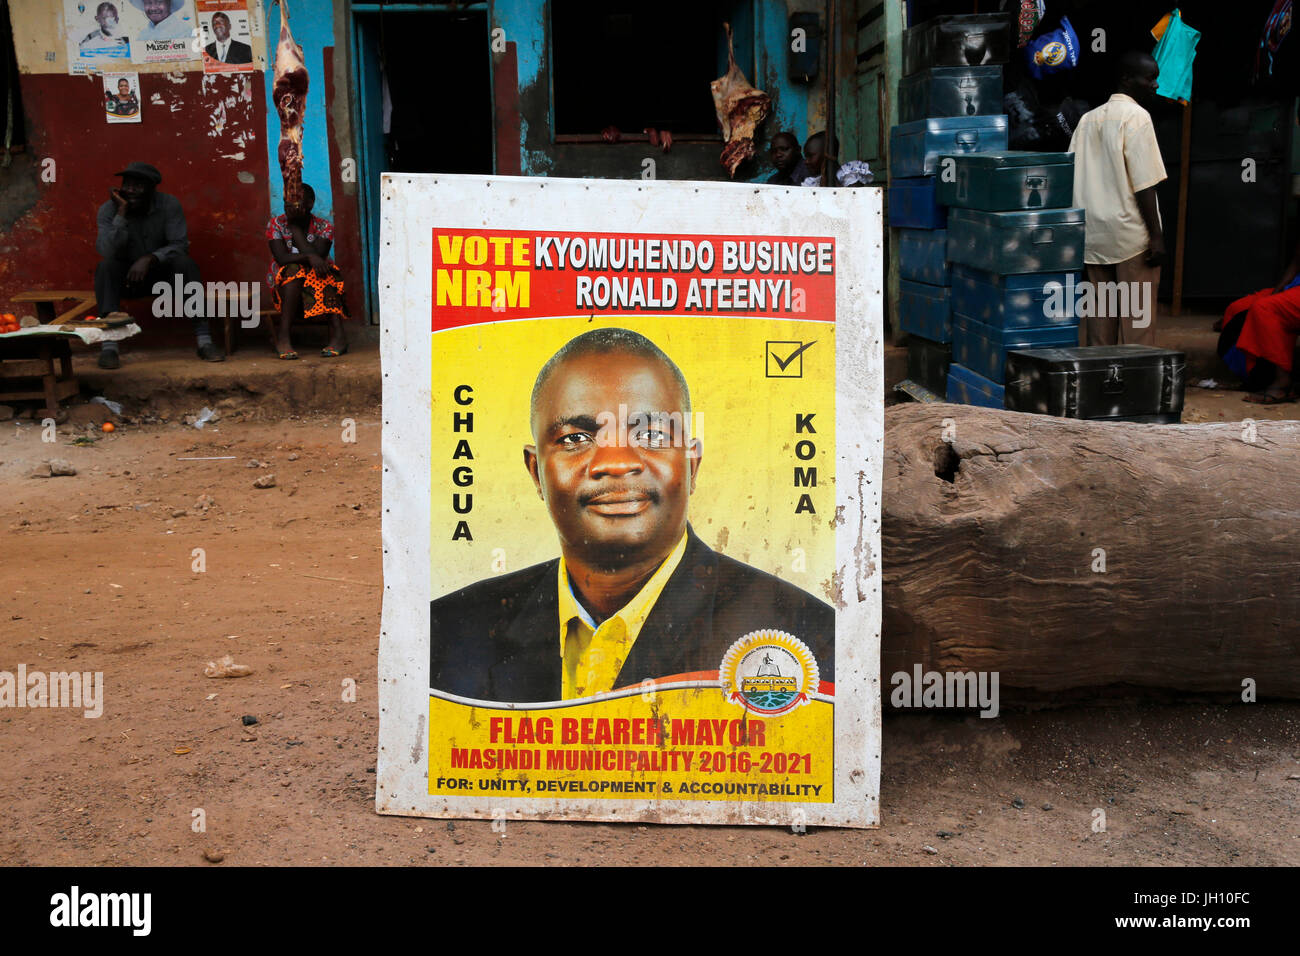 Election propaganda. Uganda. - Stock Image